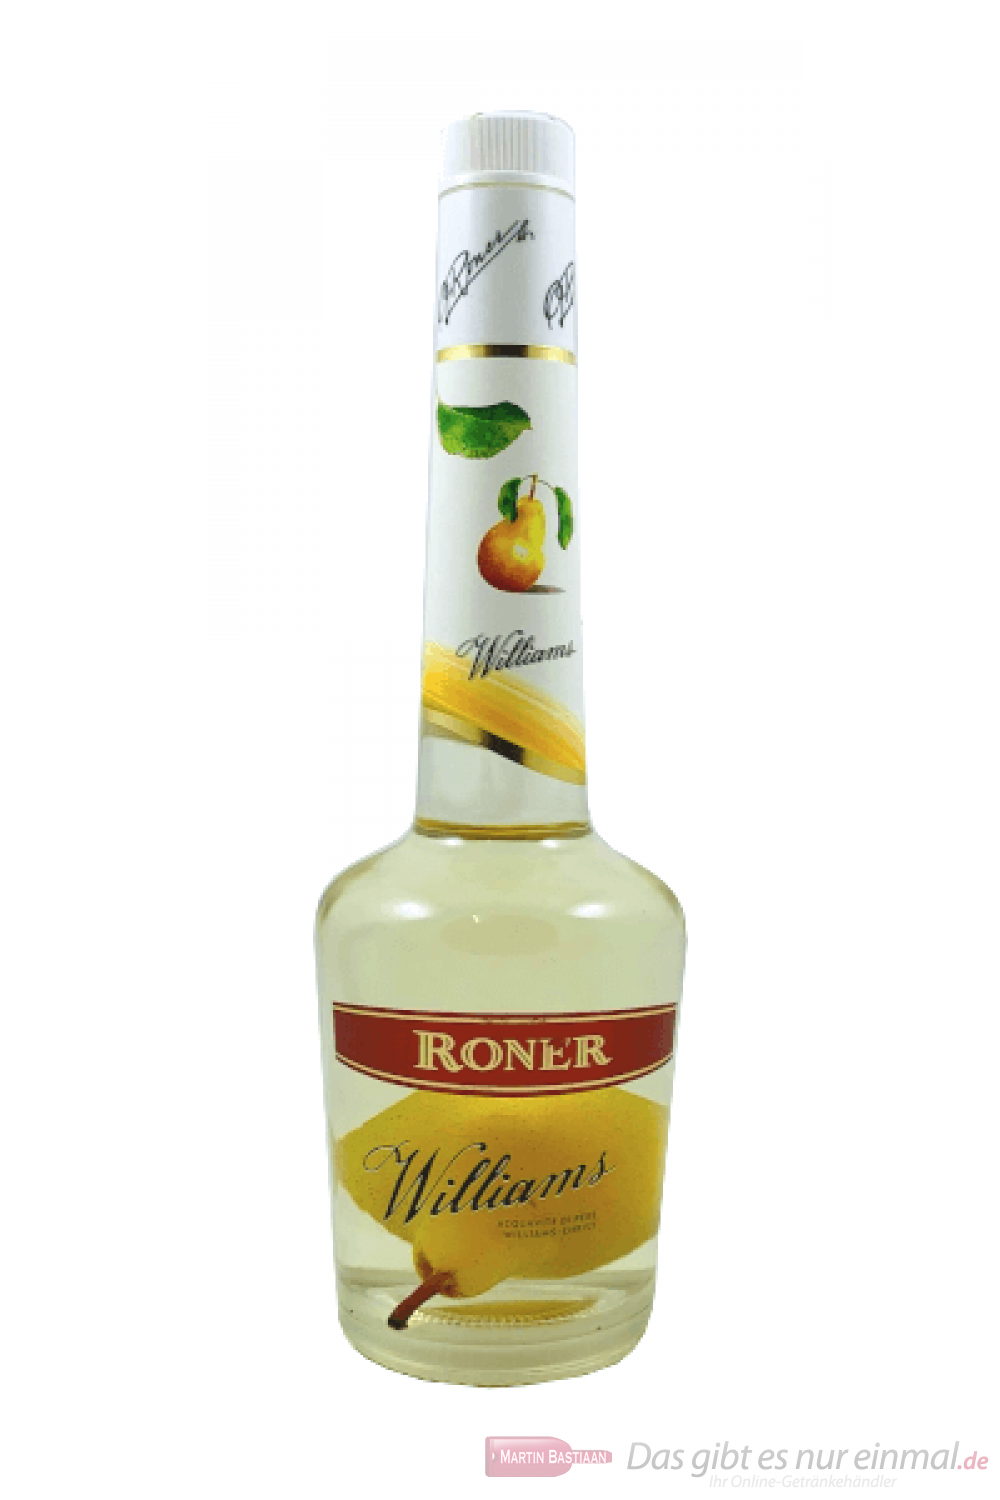 Roner Obstbrand Williams mit Birne 0,7 l